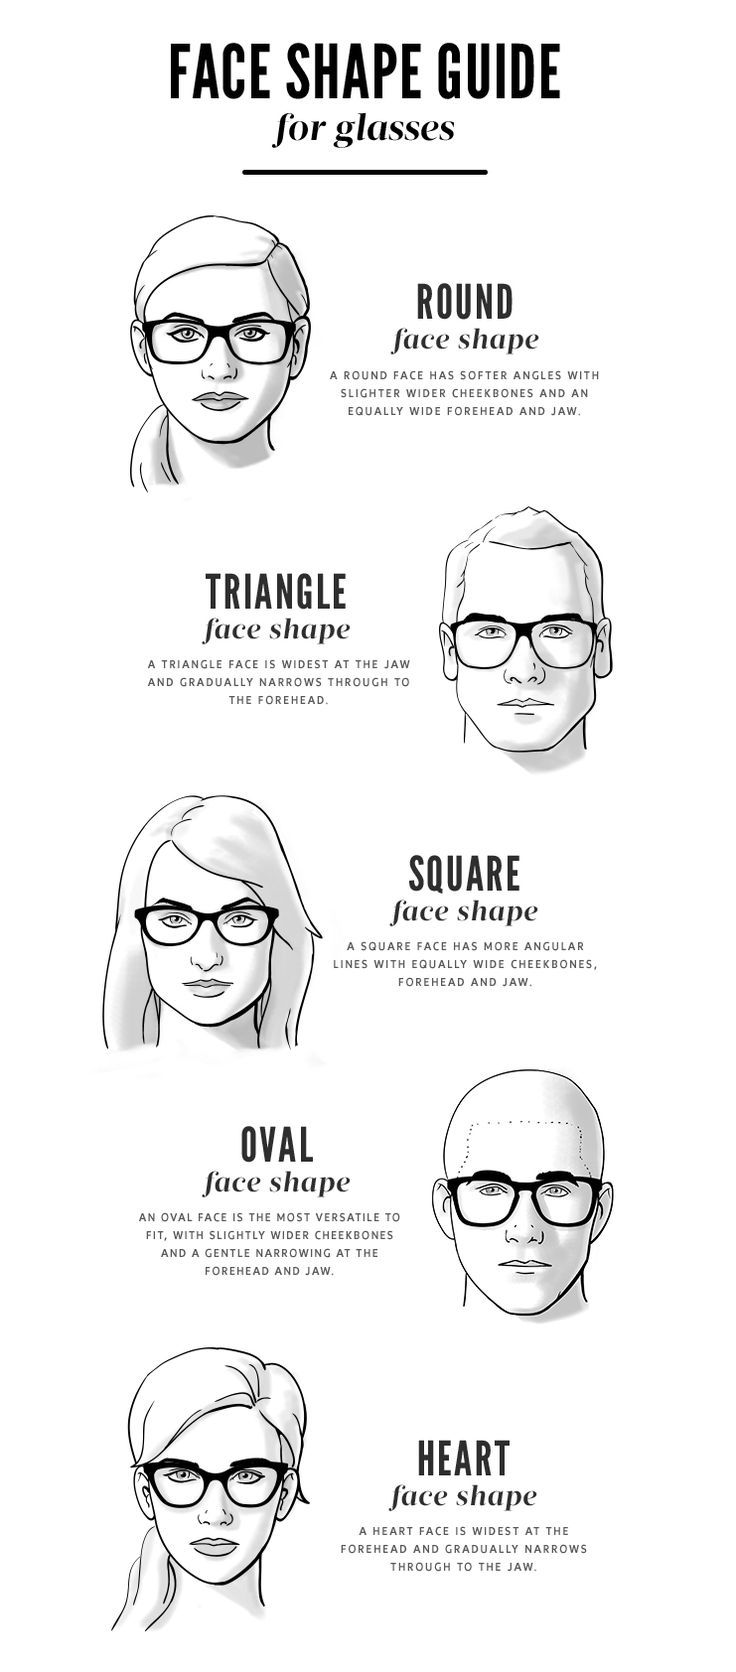 Eyeglasses Frame Shape Face : Face Shape Guide for Glasses Oakley sunglasses, For ...